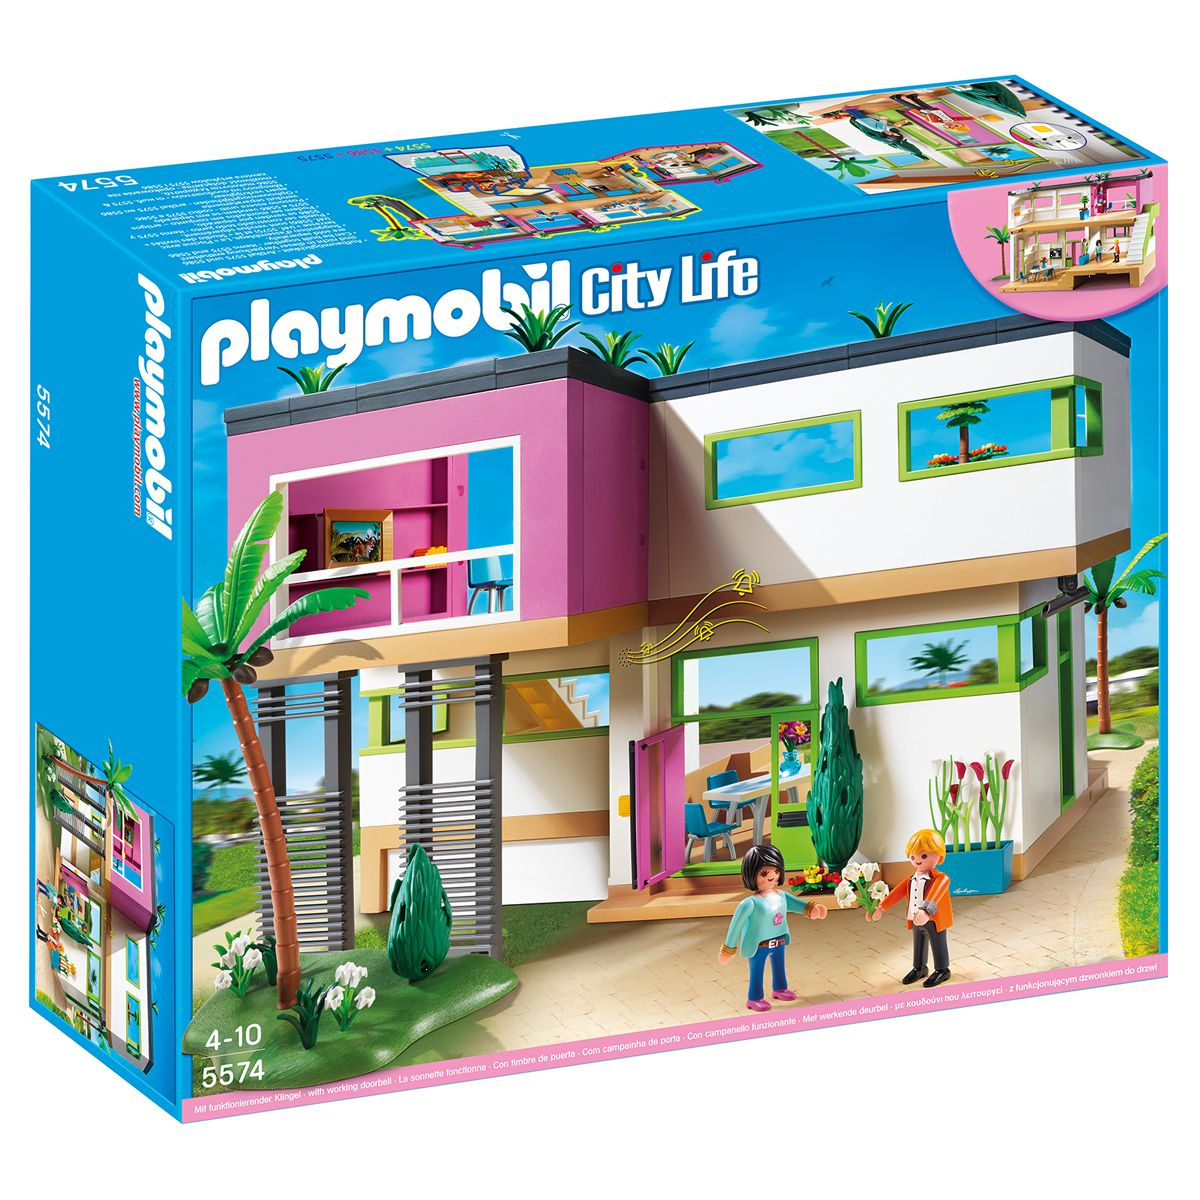 Maison Moderne Playmobil City Life - 5574 - Mini-Univers ... pour Piscine Playmobil 5575